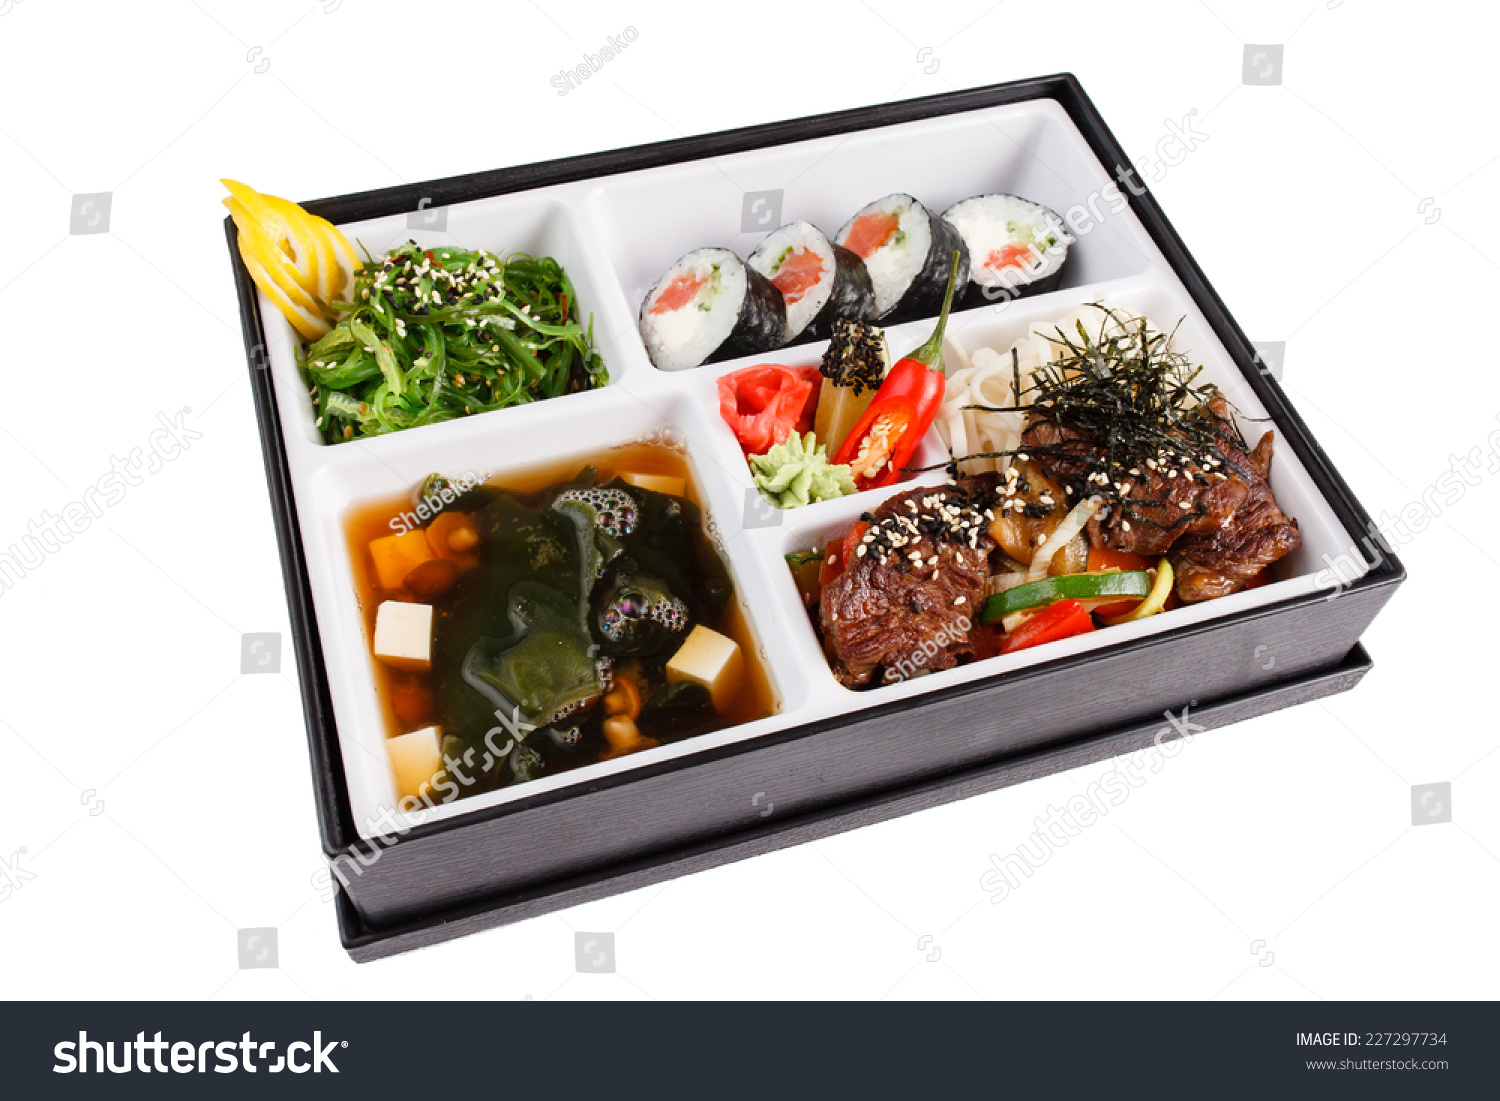 lunch box bento stock photo 227297734 shutterstock. Black Bedroom Furniture Sets. Home Design Ideas